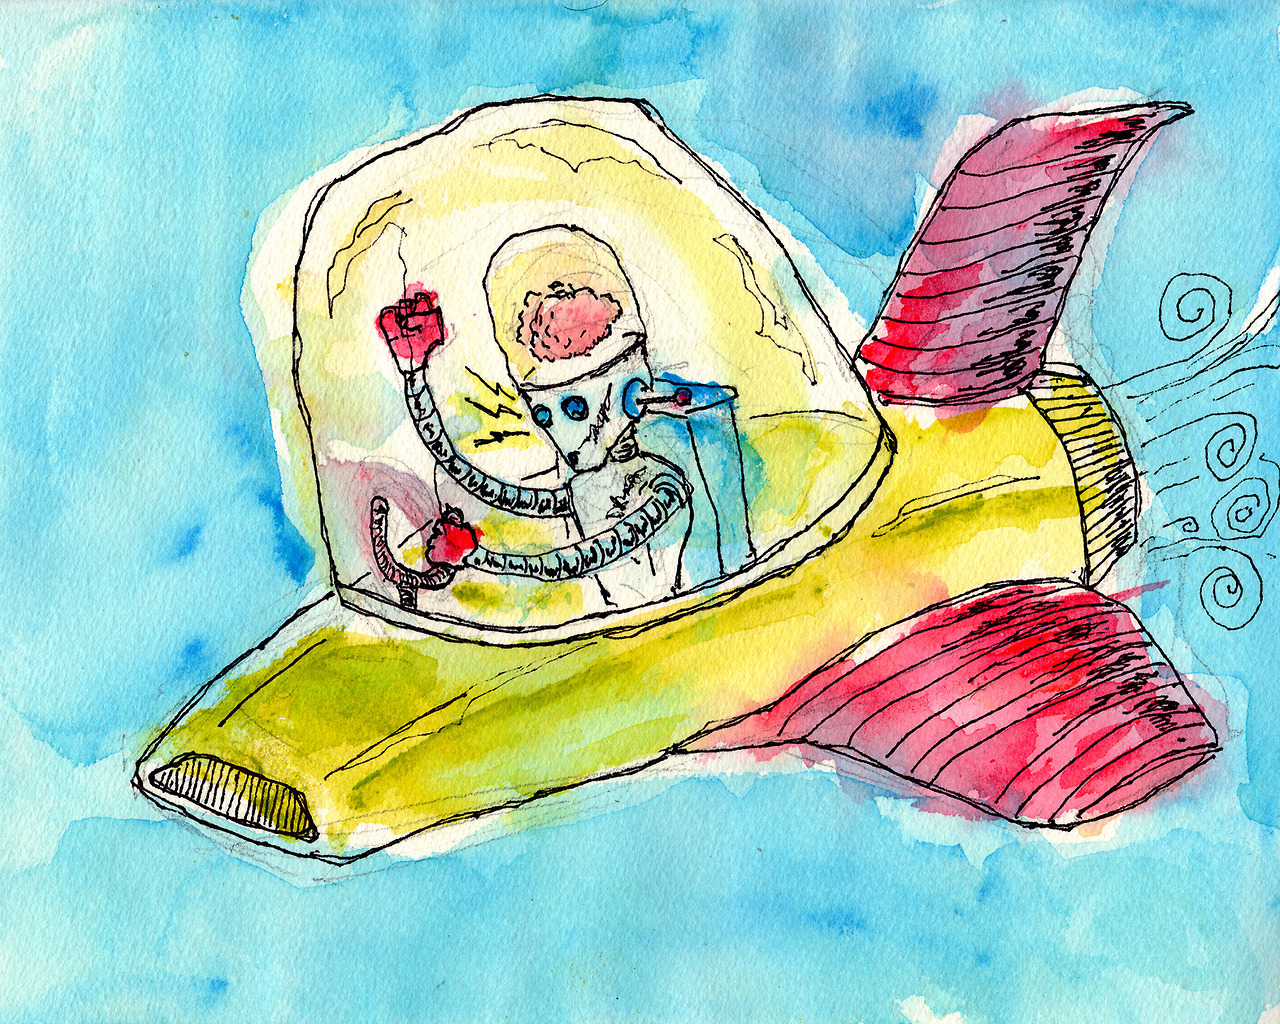 "5/31/13 -  Brain on a Plane.    Brain on a spaceship didn't rhyme.   10"" x 8"" Acrylic paint, sharpie, pencil on watercolor paper.   Available to purchase here:  http://taylorwinder.bigcartel.com    Prints available here:  http://society6.com/taylorwinder"